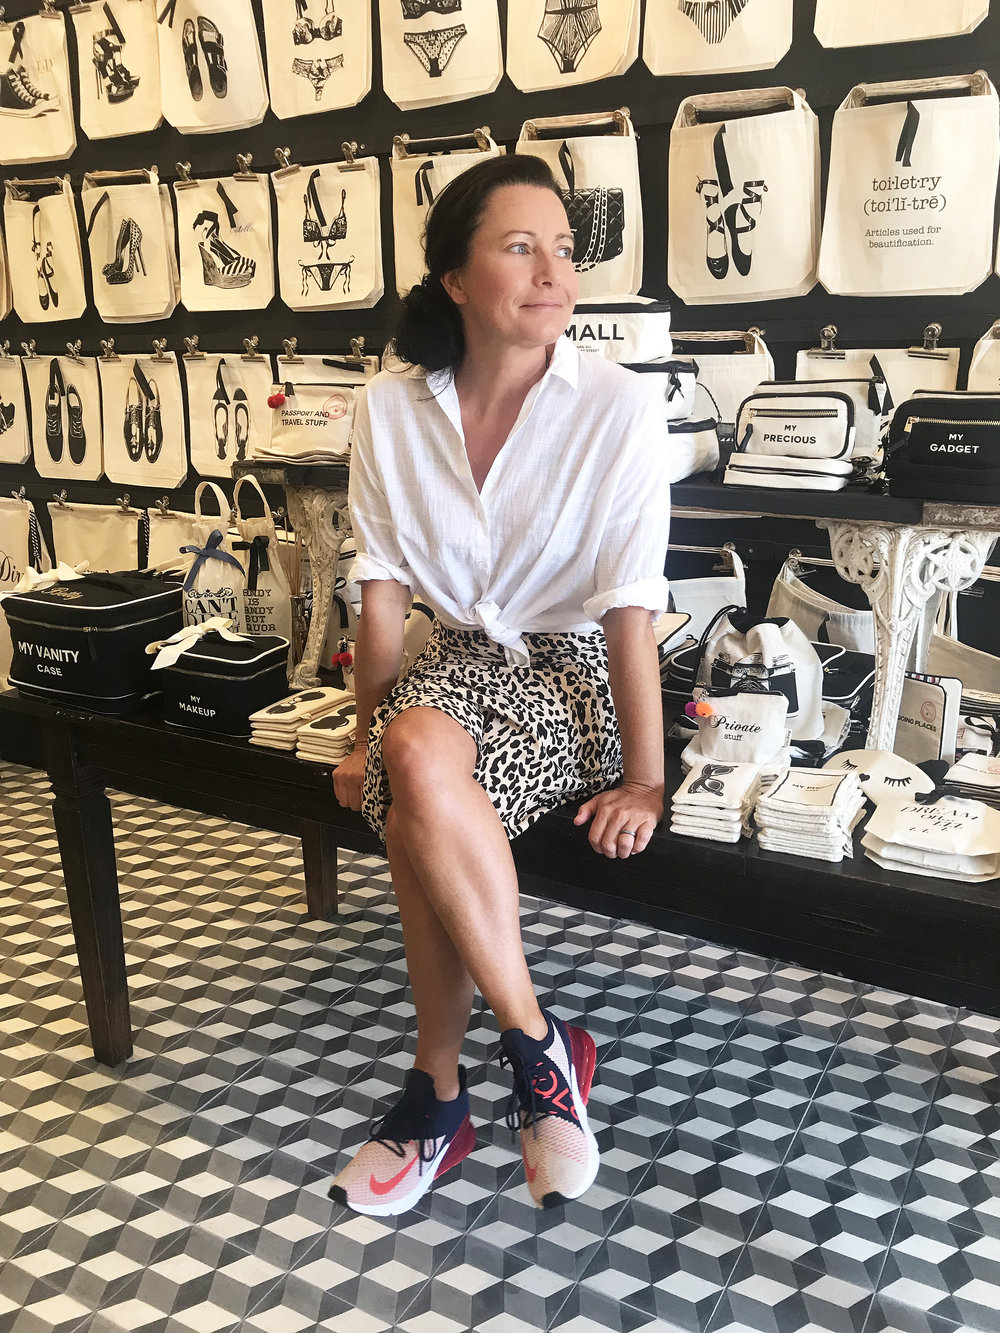 Jenny, who are you? - I am the Partner and CEO at Bag-all Australia. Three years ago I moved with my family to Sydney. In Sweden I worked as a photographer, but when we moved to Australia I reeducated myself and became a business woman and entrepreneur!